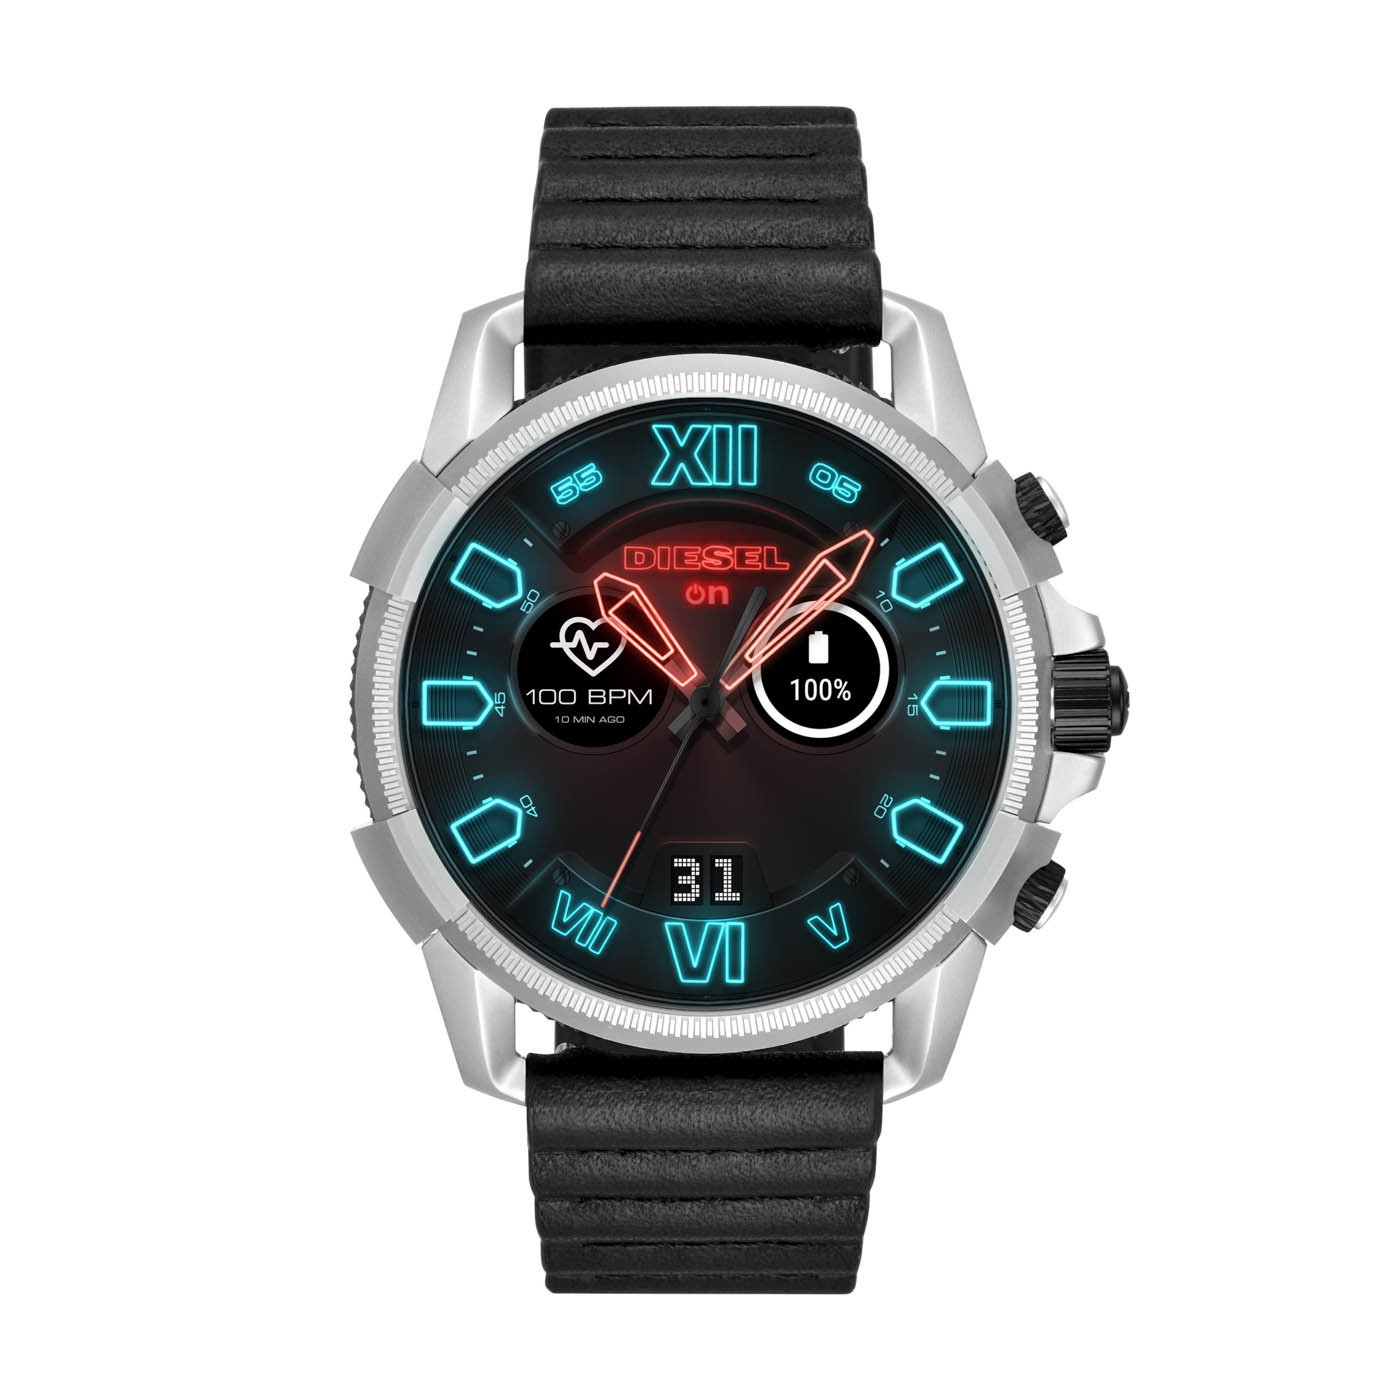 Diesel On Full Guard 2.5 Gen 4 Display Smartwatch DZT2008